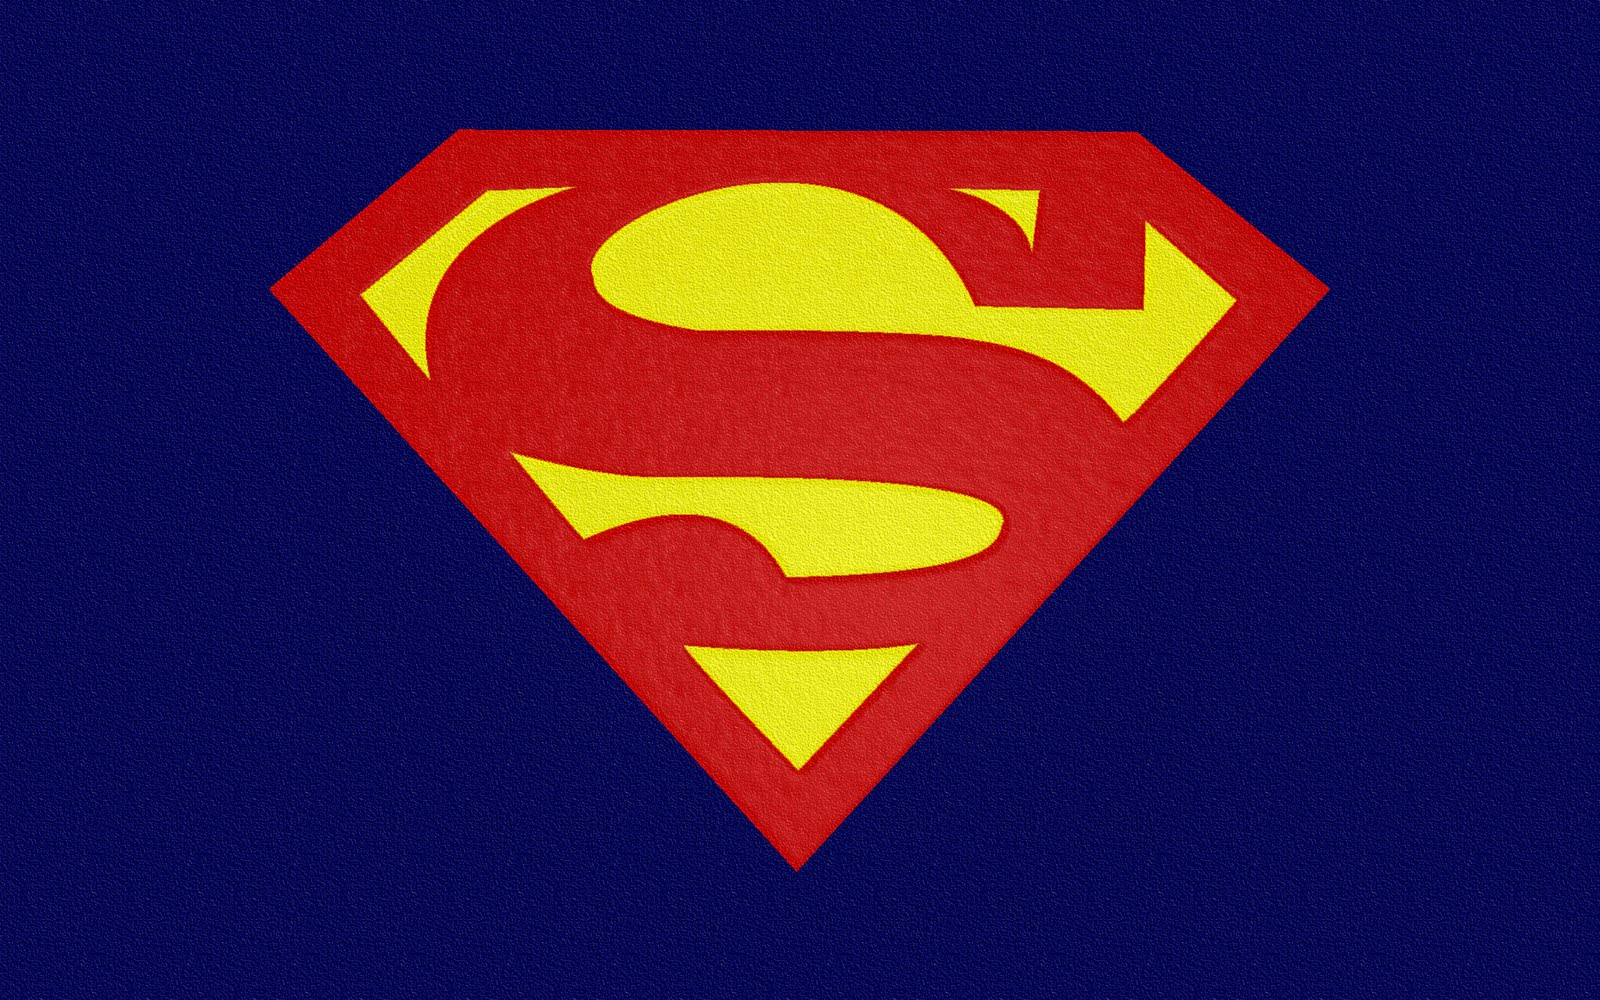 Superman_Leather Hd Wallpaper